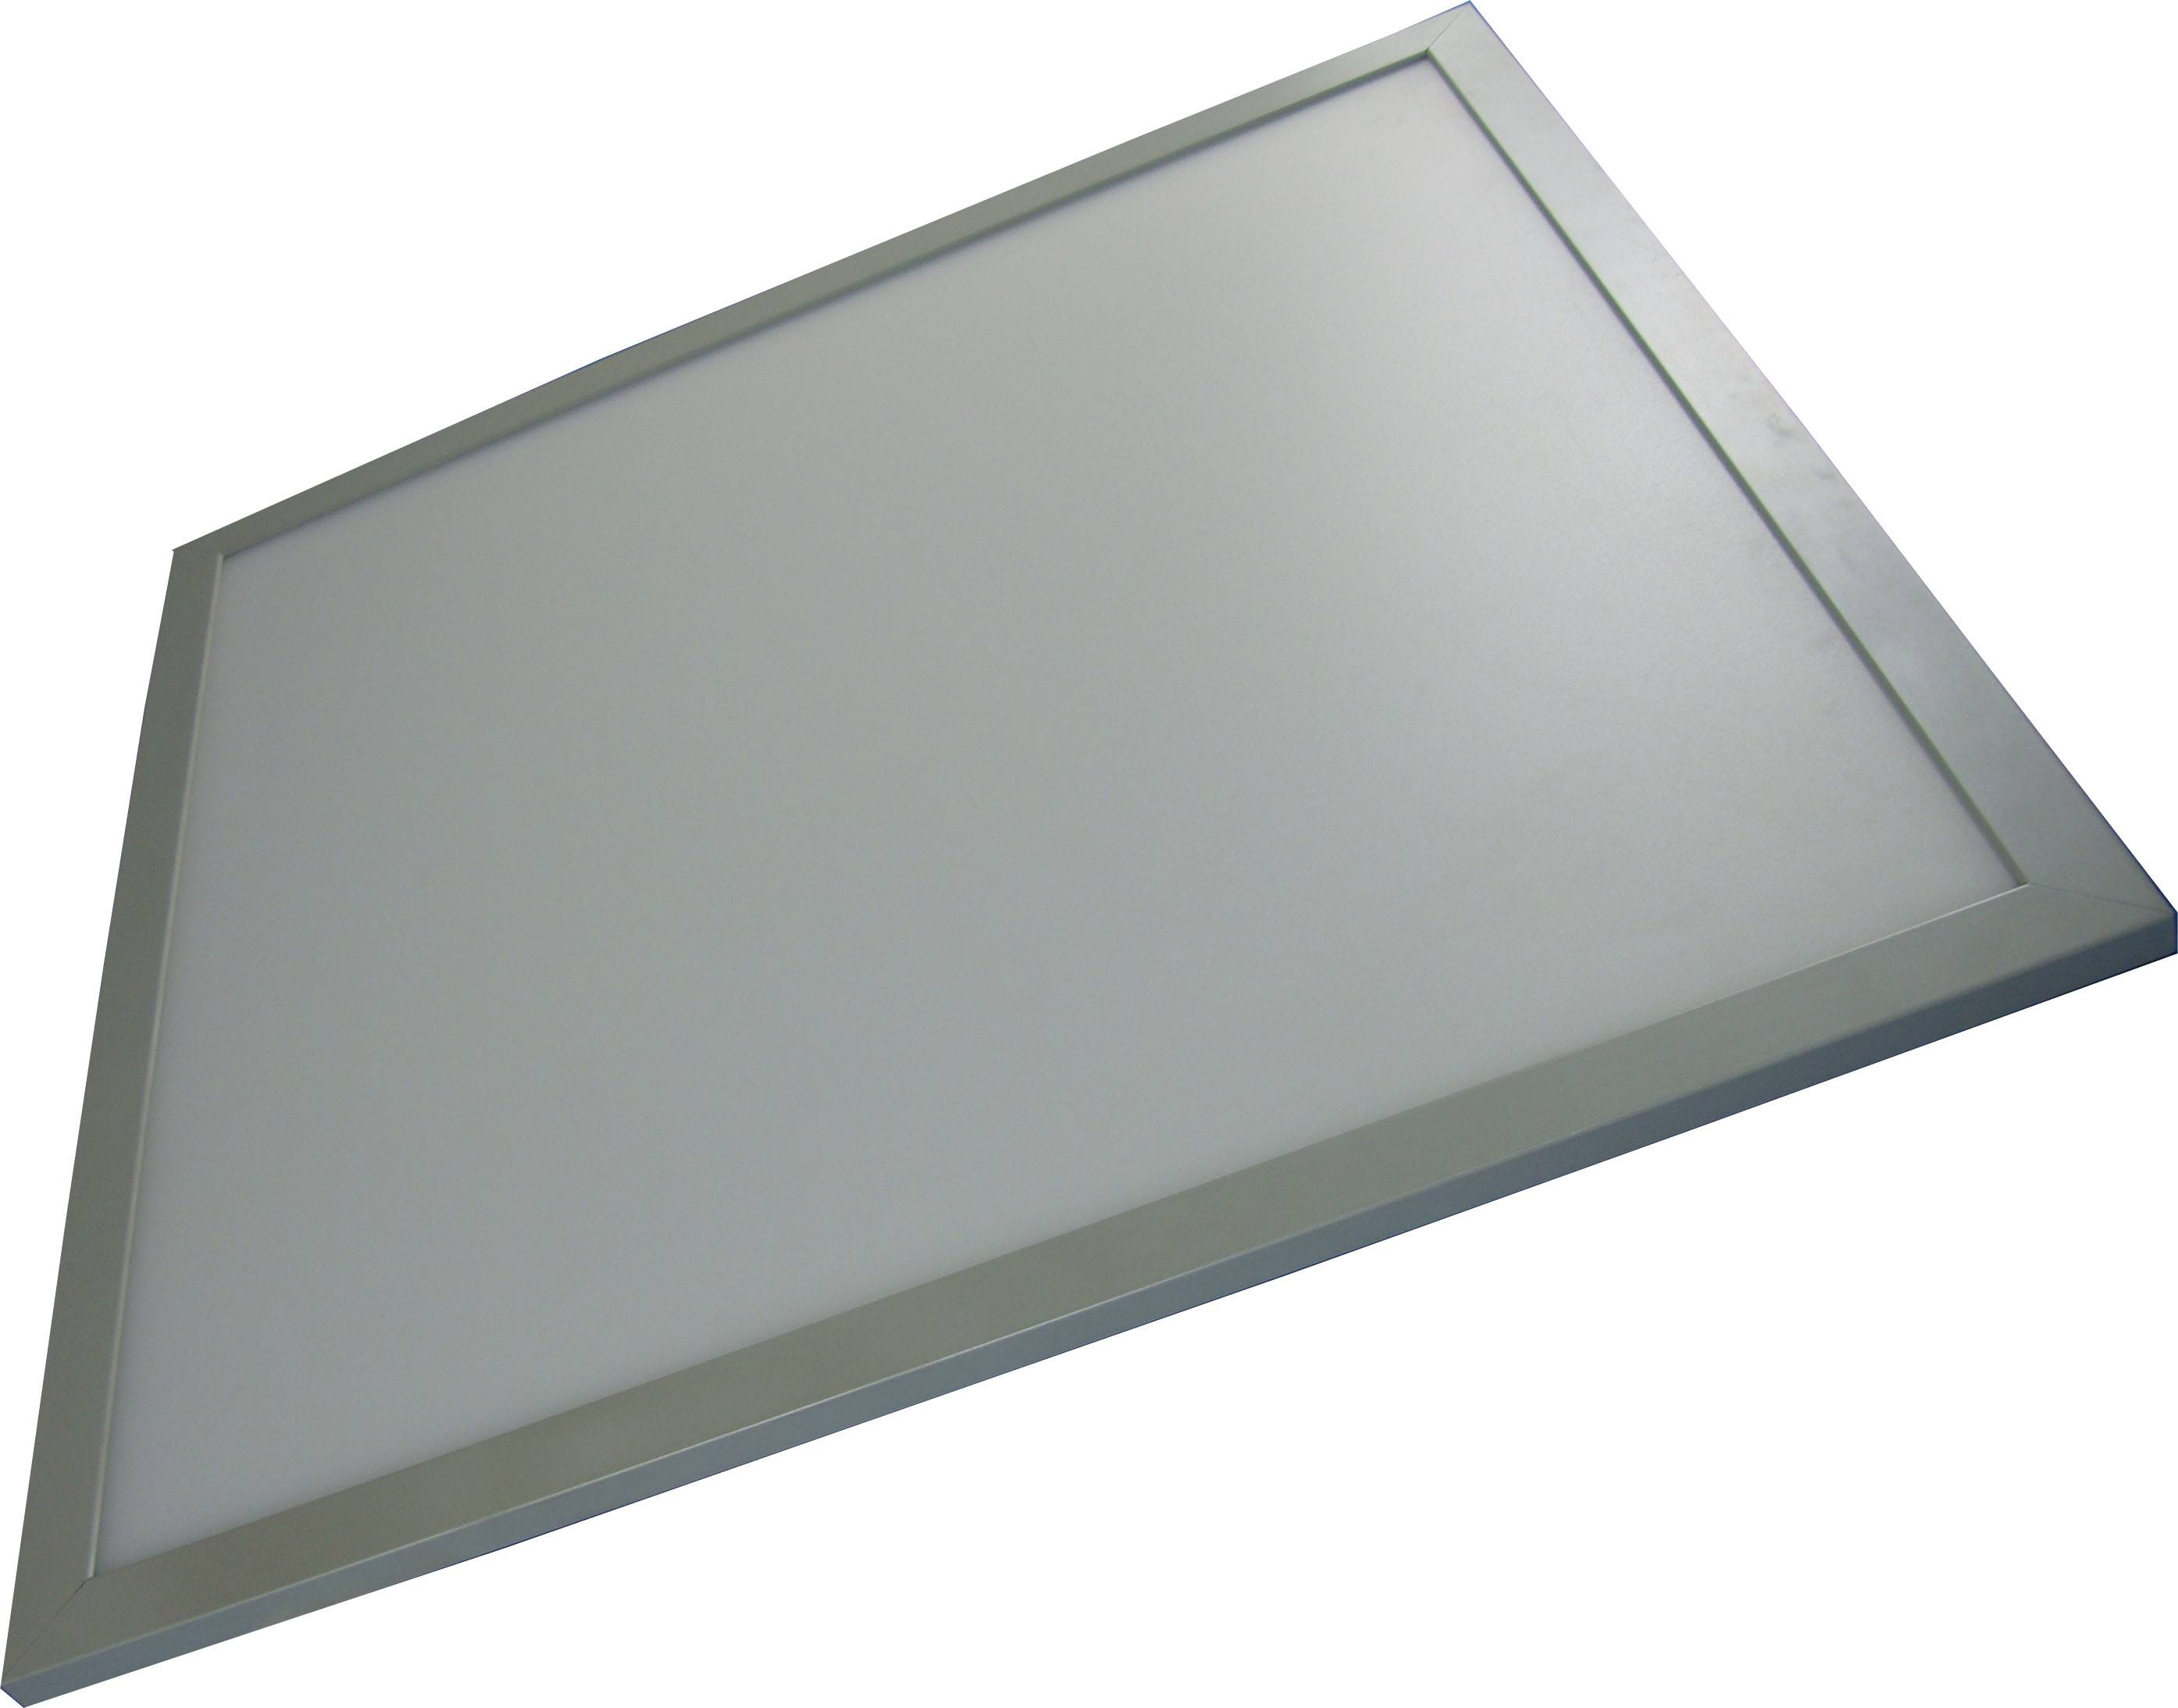 Energy saving LED panel 600*600mm